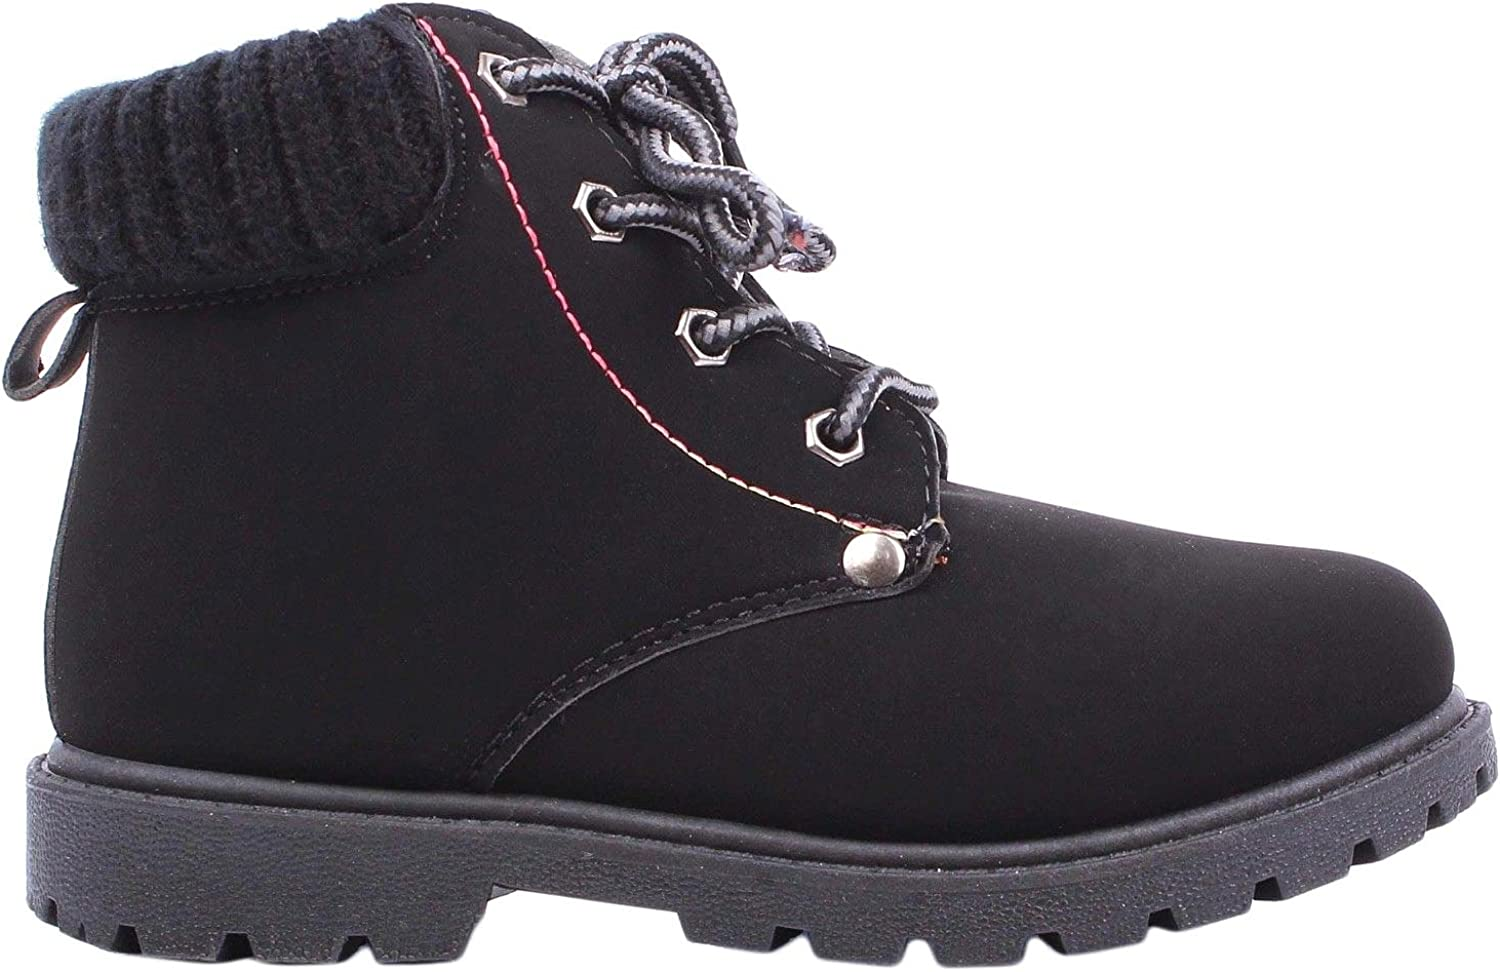 Kids Girls Ankle-High Combat Zipper Laces National Price reduction products Boots and Winte Nubuck